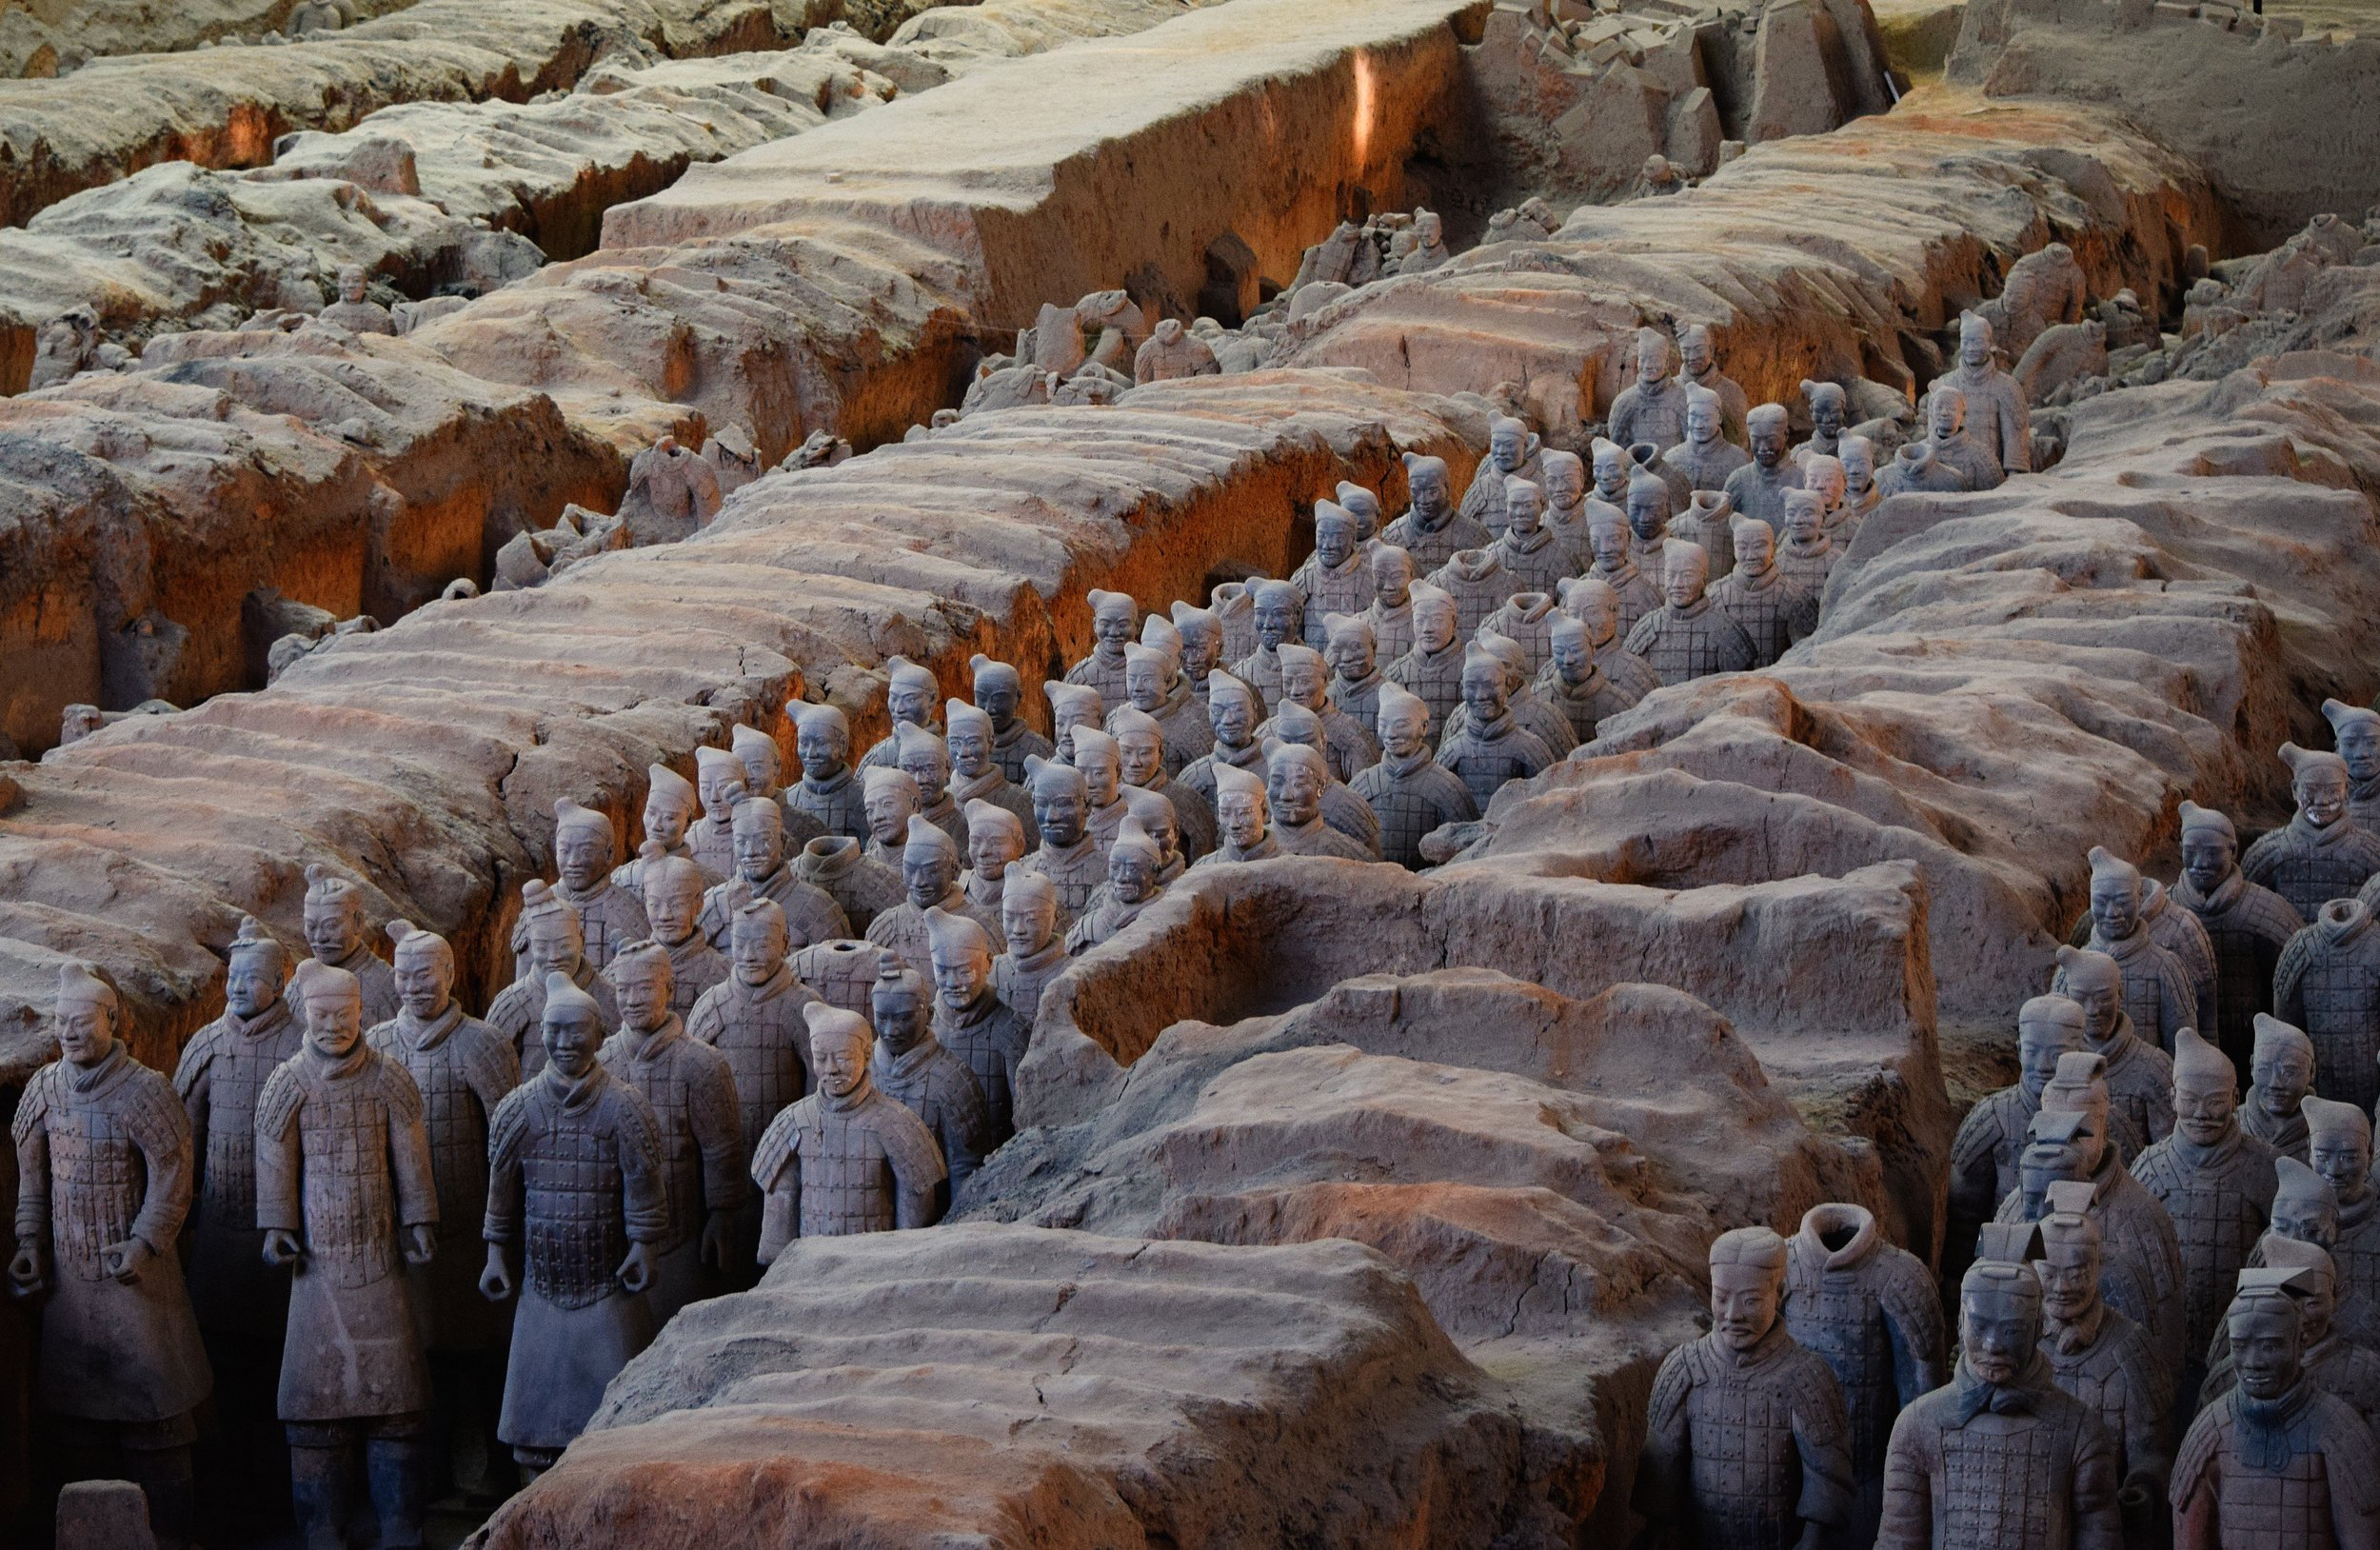 While digging wells on the outskirts of Xi'an in 1974, a group of farmers stumbled across one of the most significant discoveries in the history of archaeology; the terracotta army, which had remained hidden underground for over 2,000 years.    The site holds over 8,000 life sized clay soldiers, with each sculpture individualised so no two soldiers look the same. As well as model chariots and horses all buried with the mausoleum of the first emperor Qin Shi Huang; representing the army that triumphed over the other Chinese armies in the warring states period to form a united China.